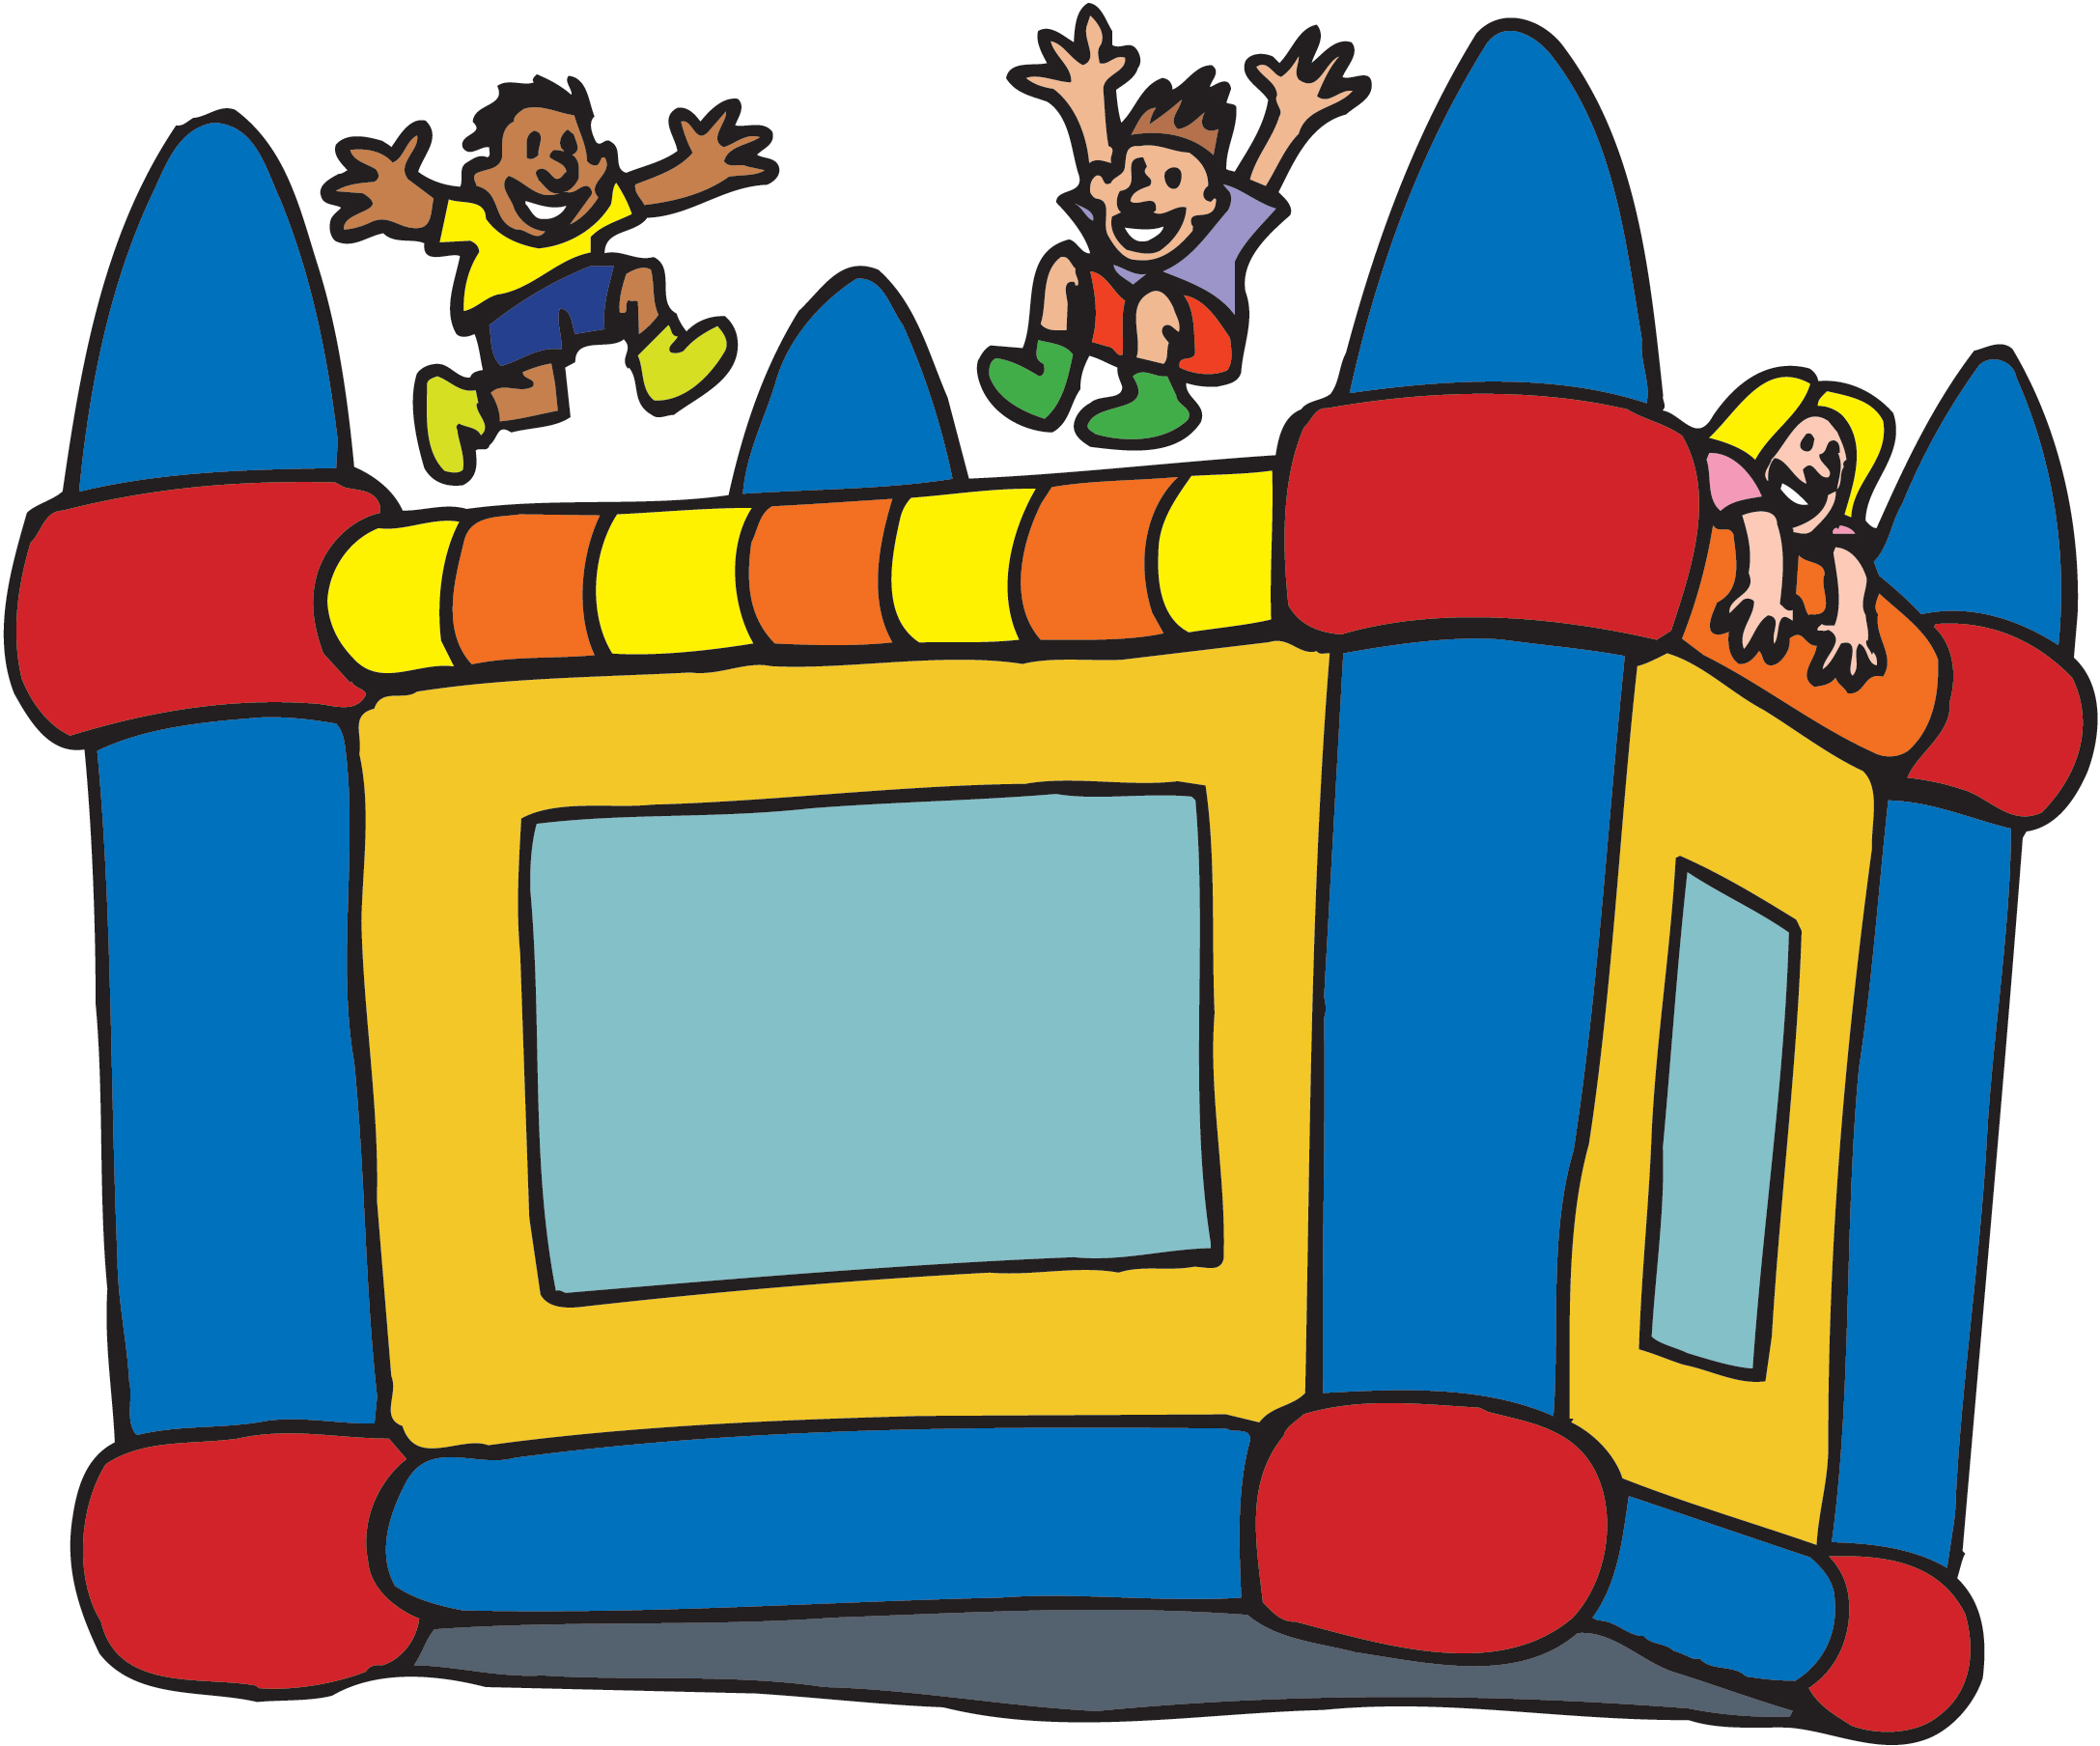 Bouncy castle clipart 20 free Cliparts | Download images on